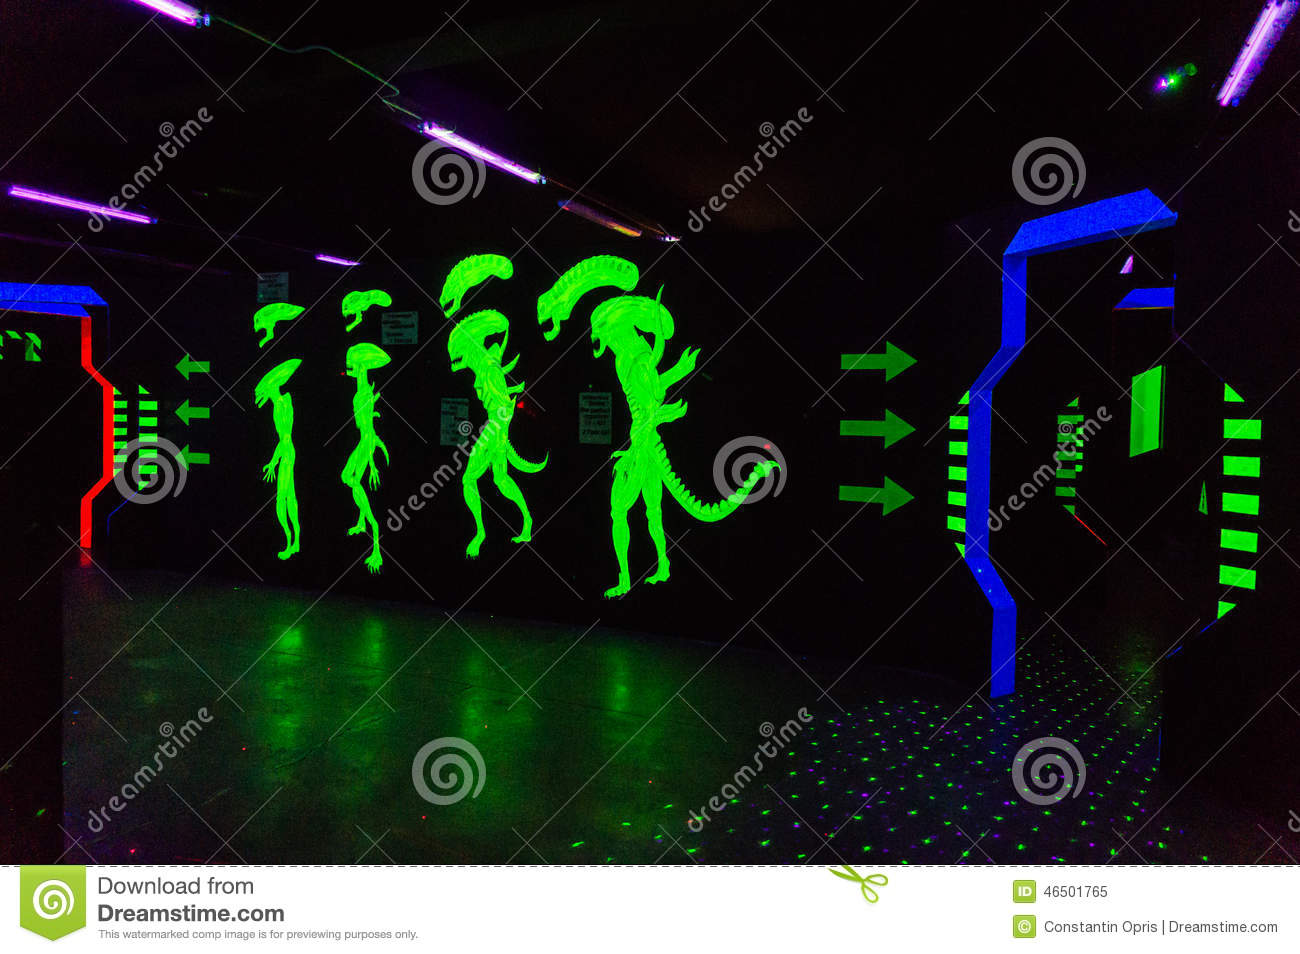 Laser tag arena decorated with alien characters.